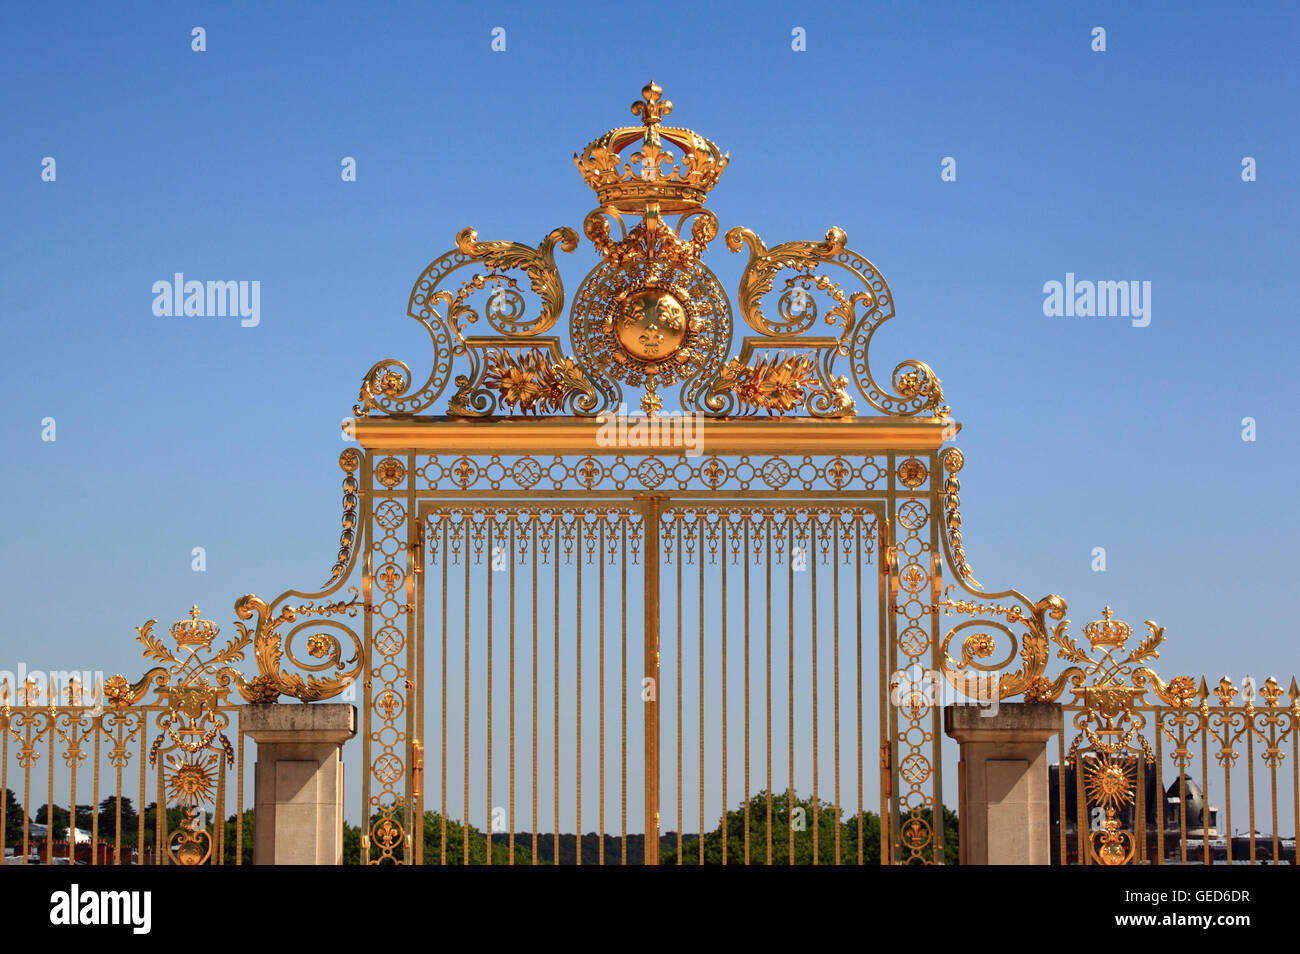 The Gate Of Honour , Palace Of Versailles, France, Europe - Stock Image